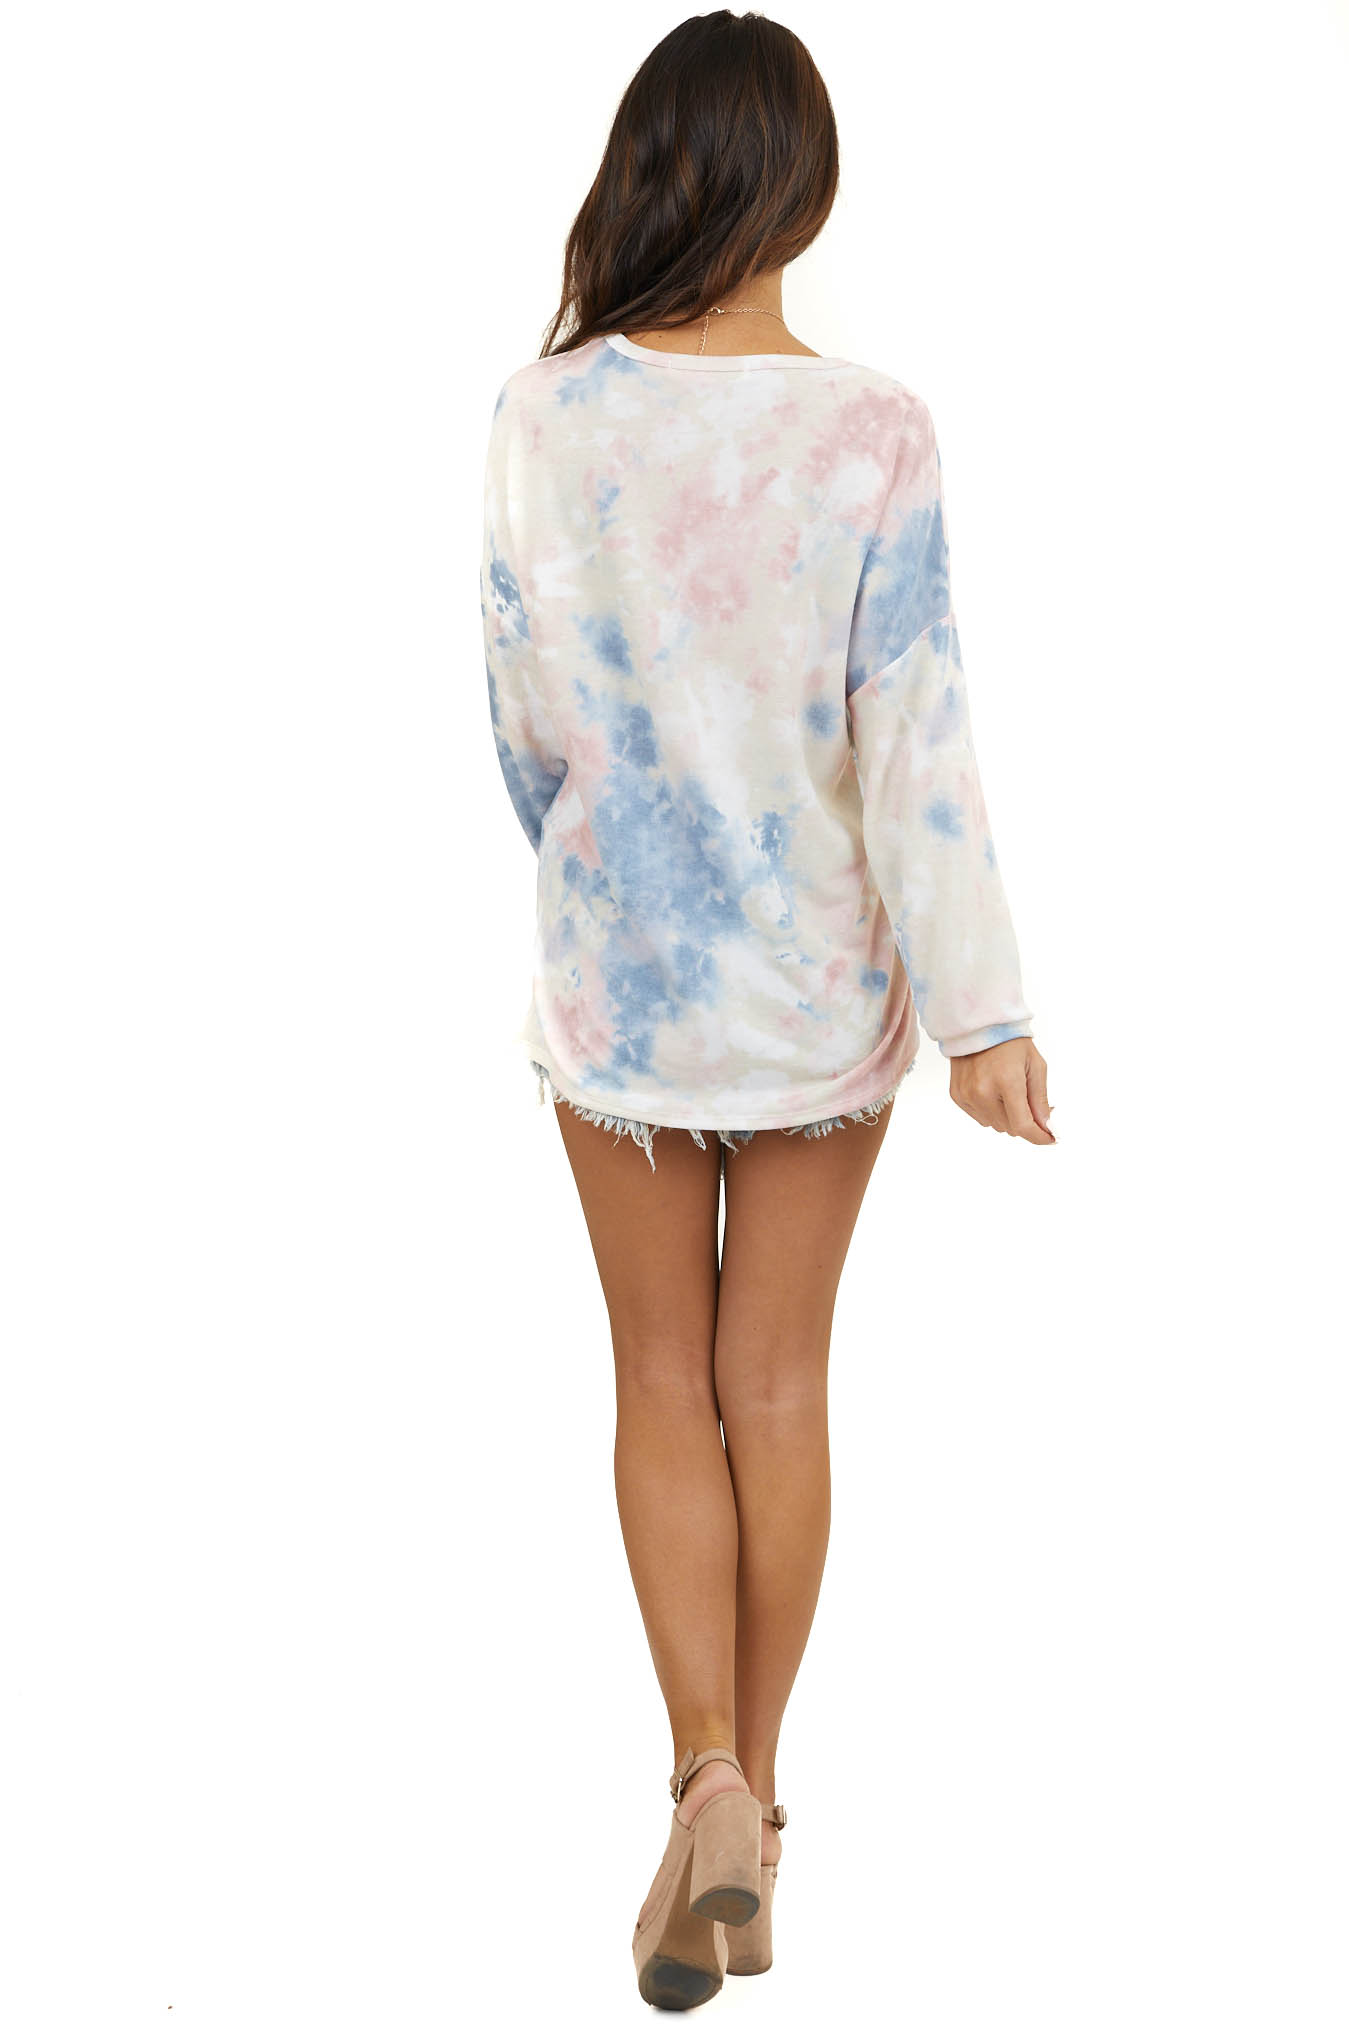 Dusty Blush Multicolor Long Sleeve Top with Rounded Neckline